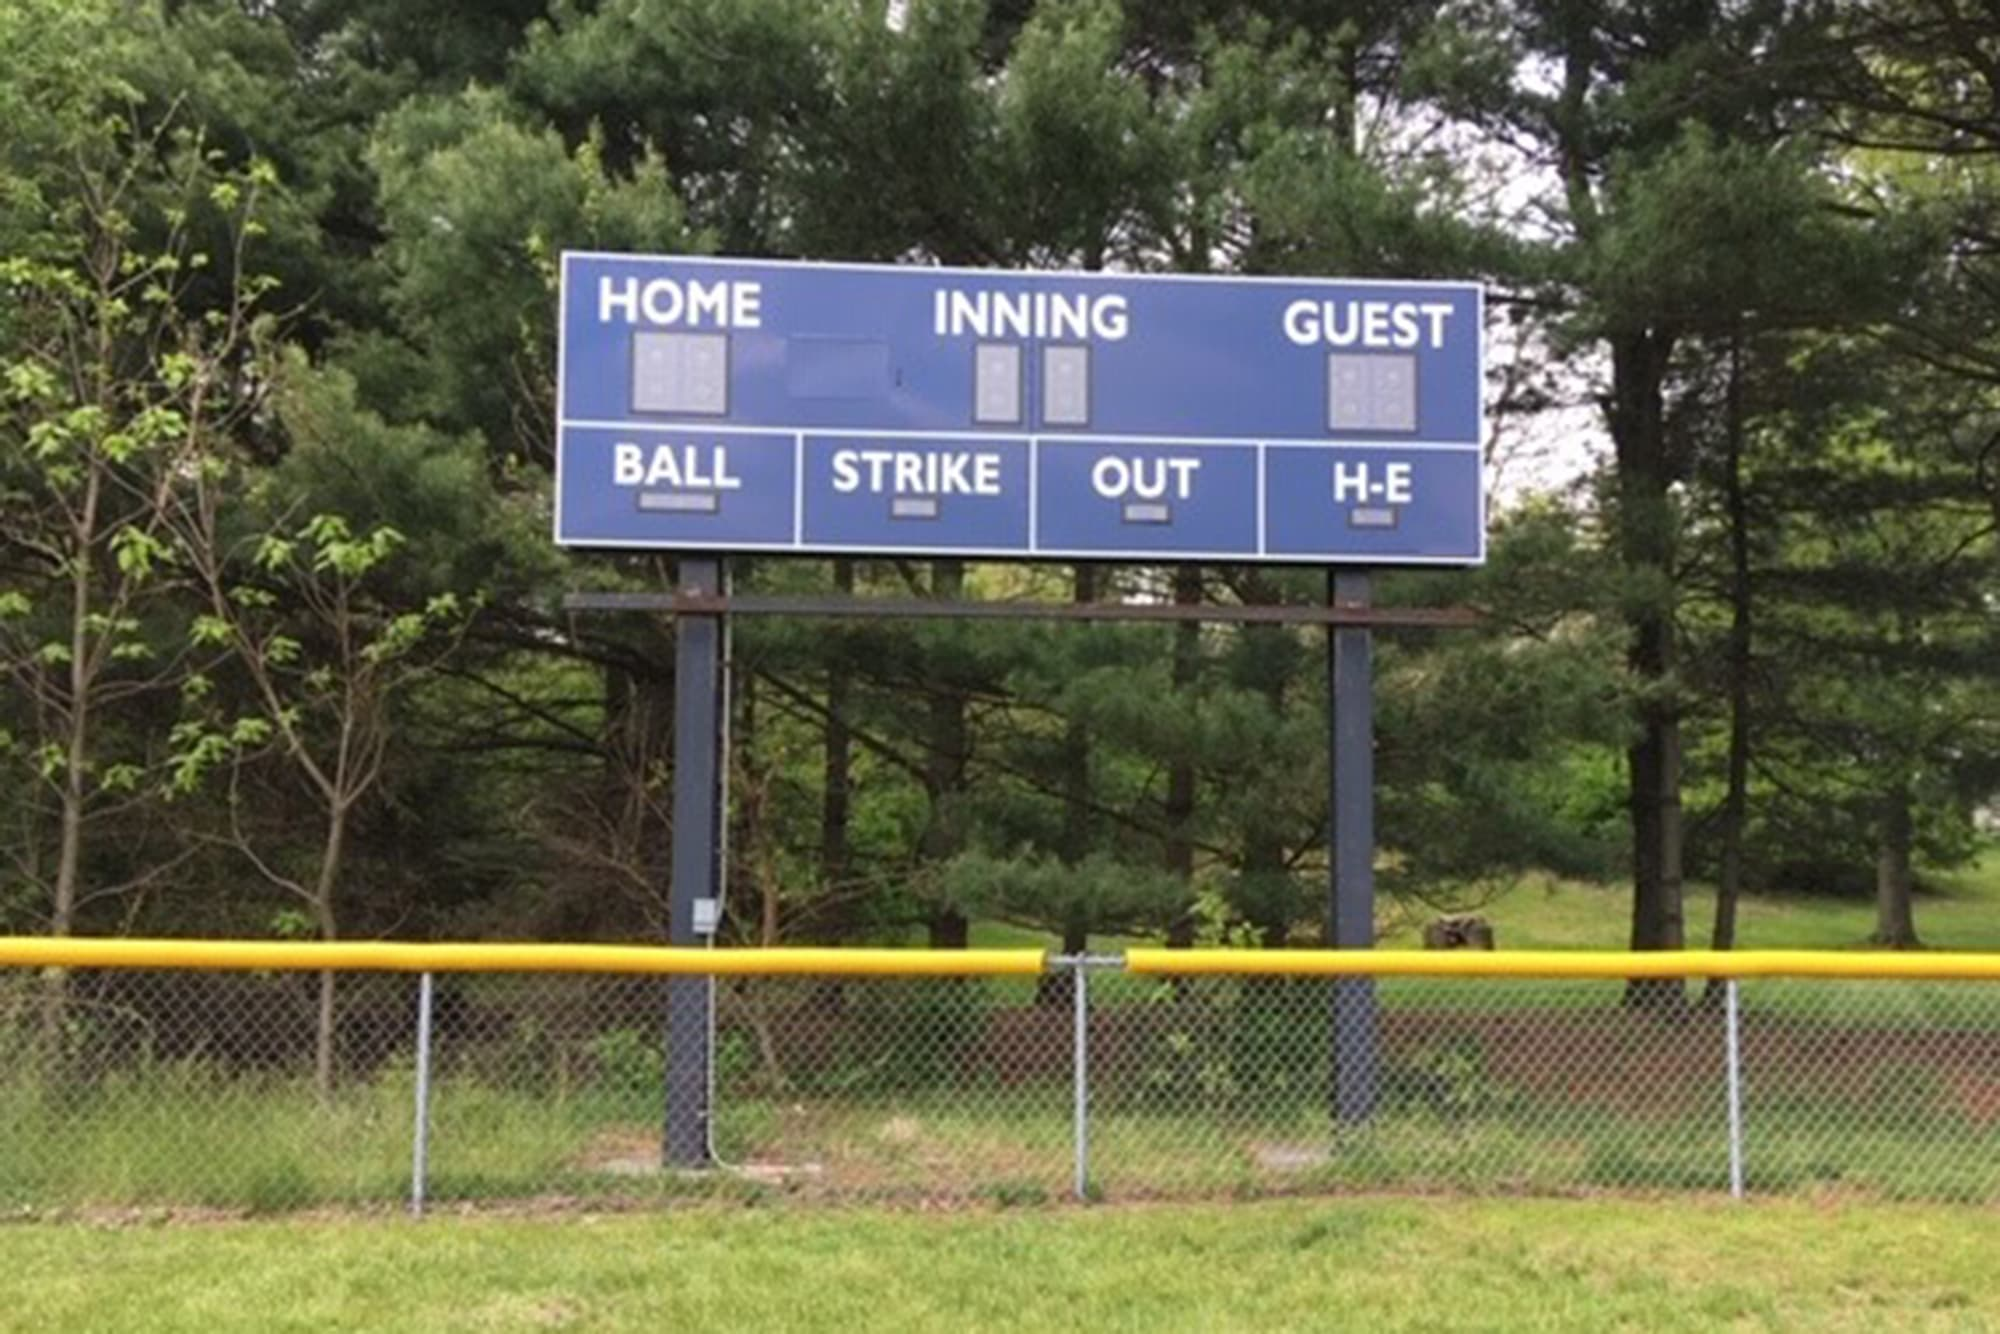 DeMotte LL New Scoreboard built from the Grow the Game Grant